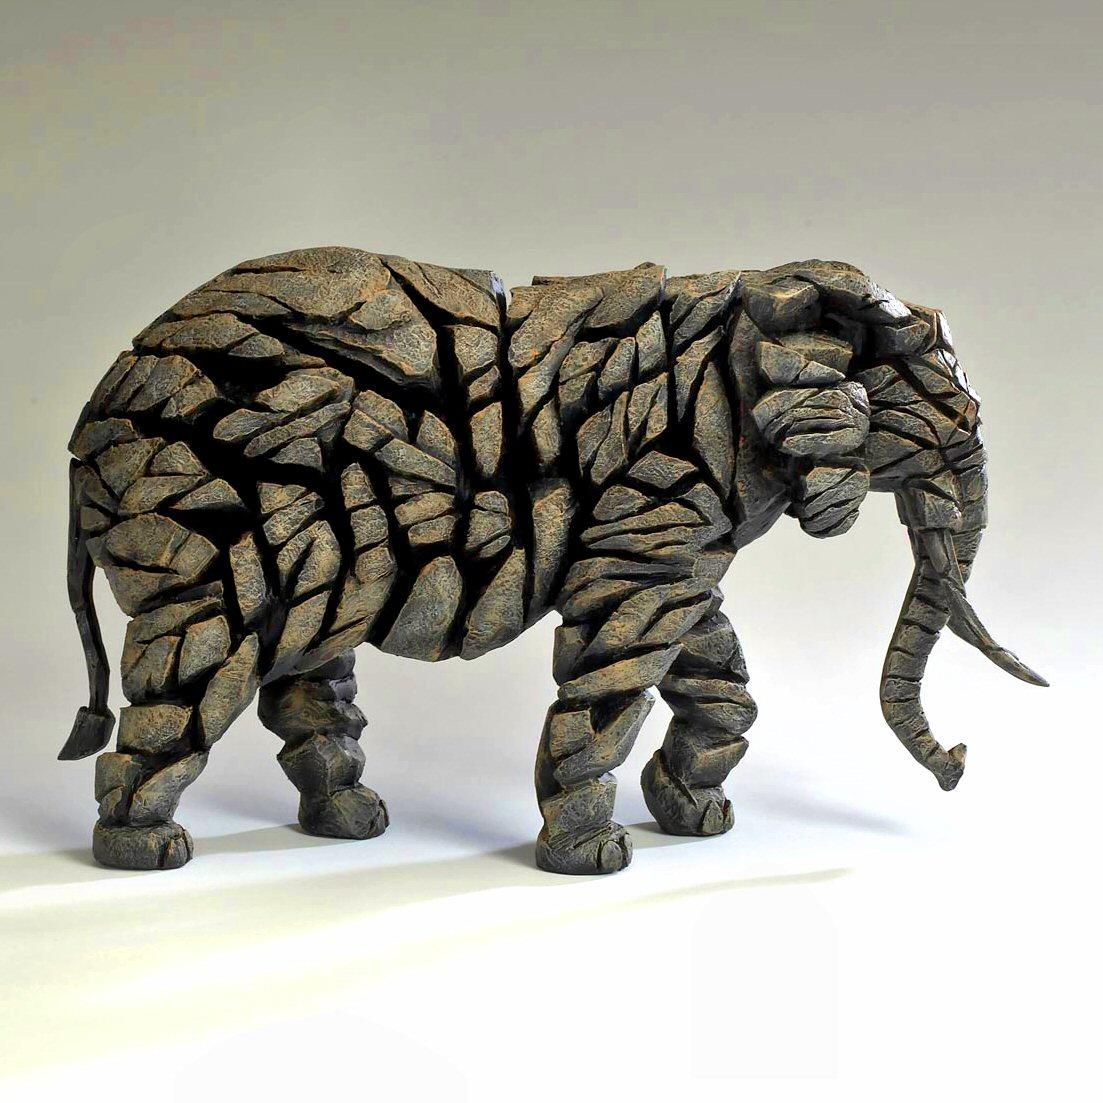 Elephant - Mocha ED04 EDGE by Matt Buckley